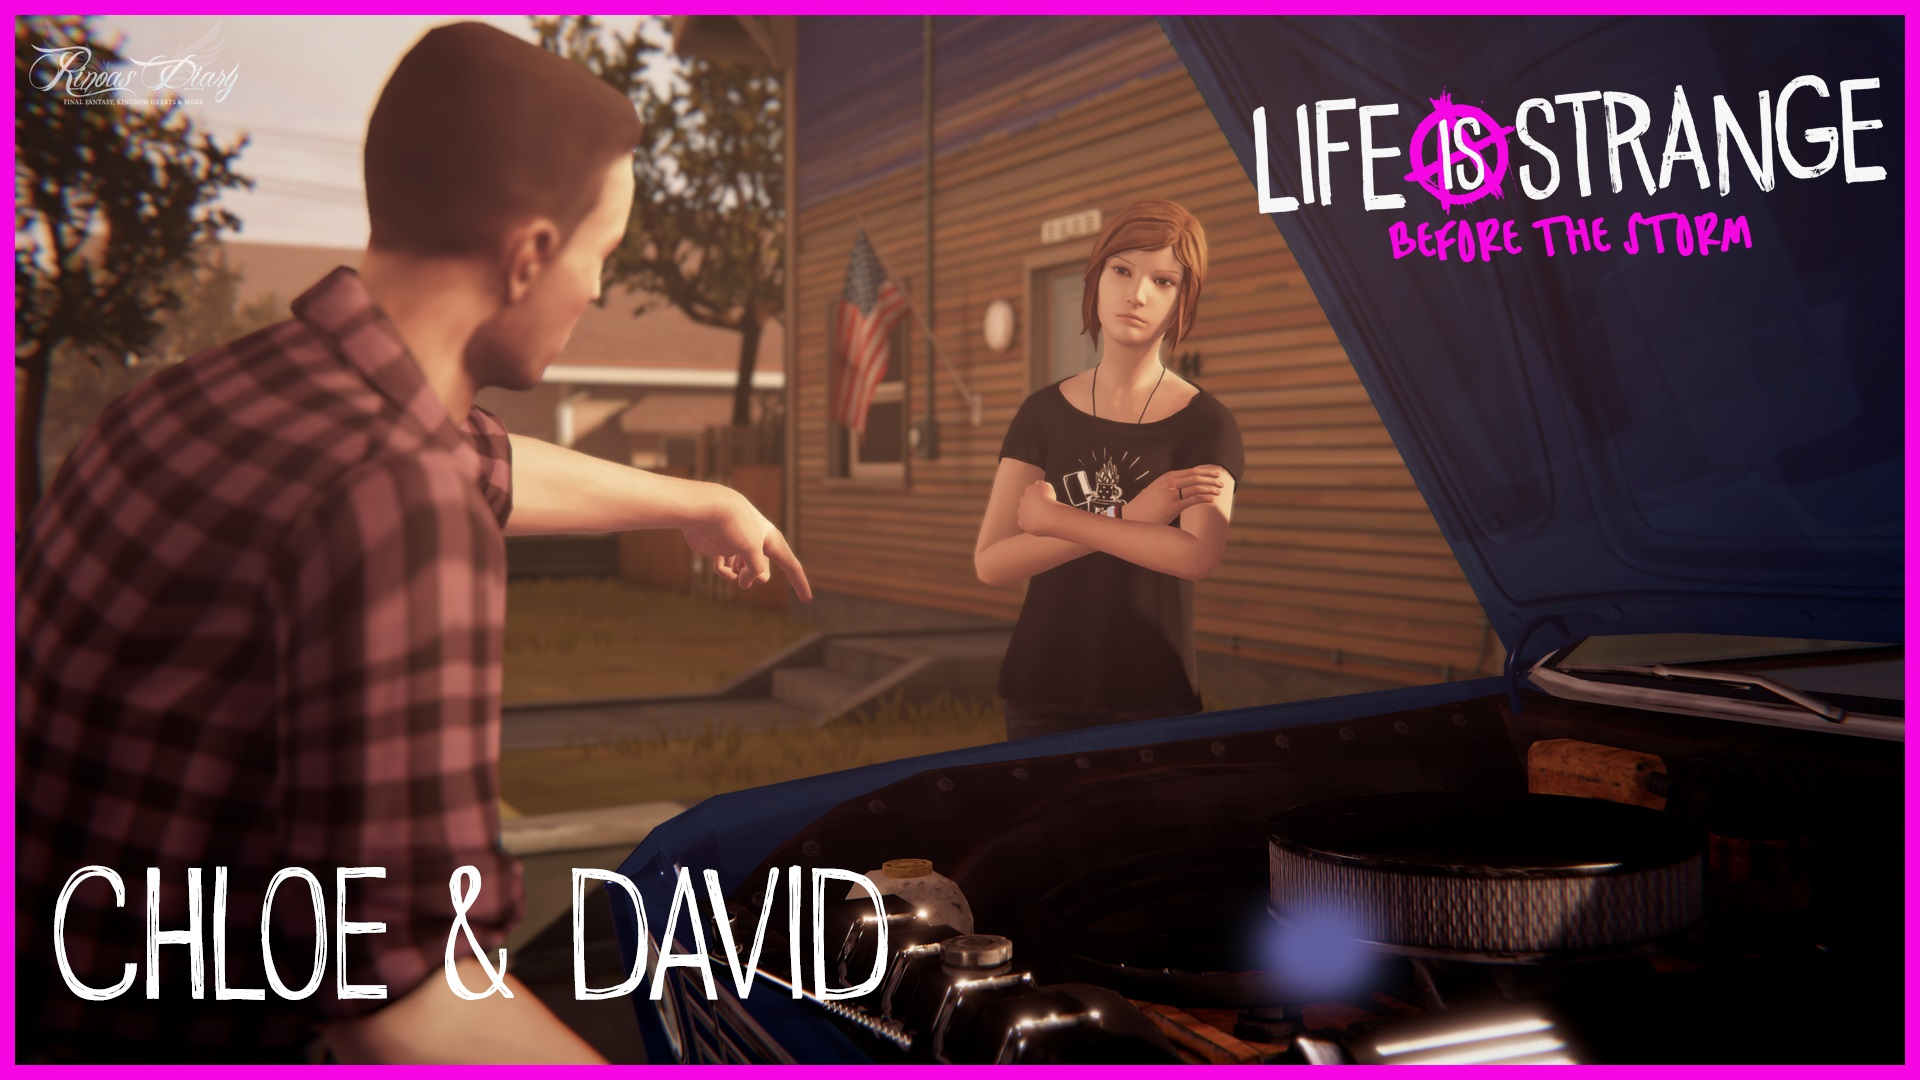 Nuove immagini e video per Life is Strange: Before the Storm – Chloe & David